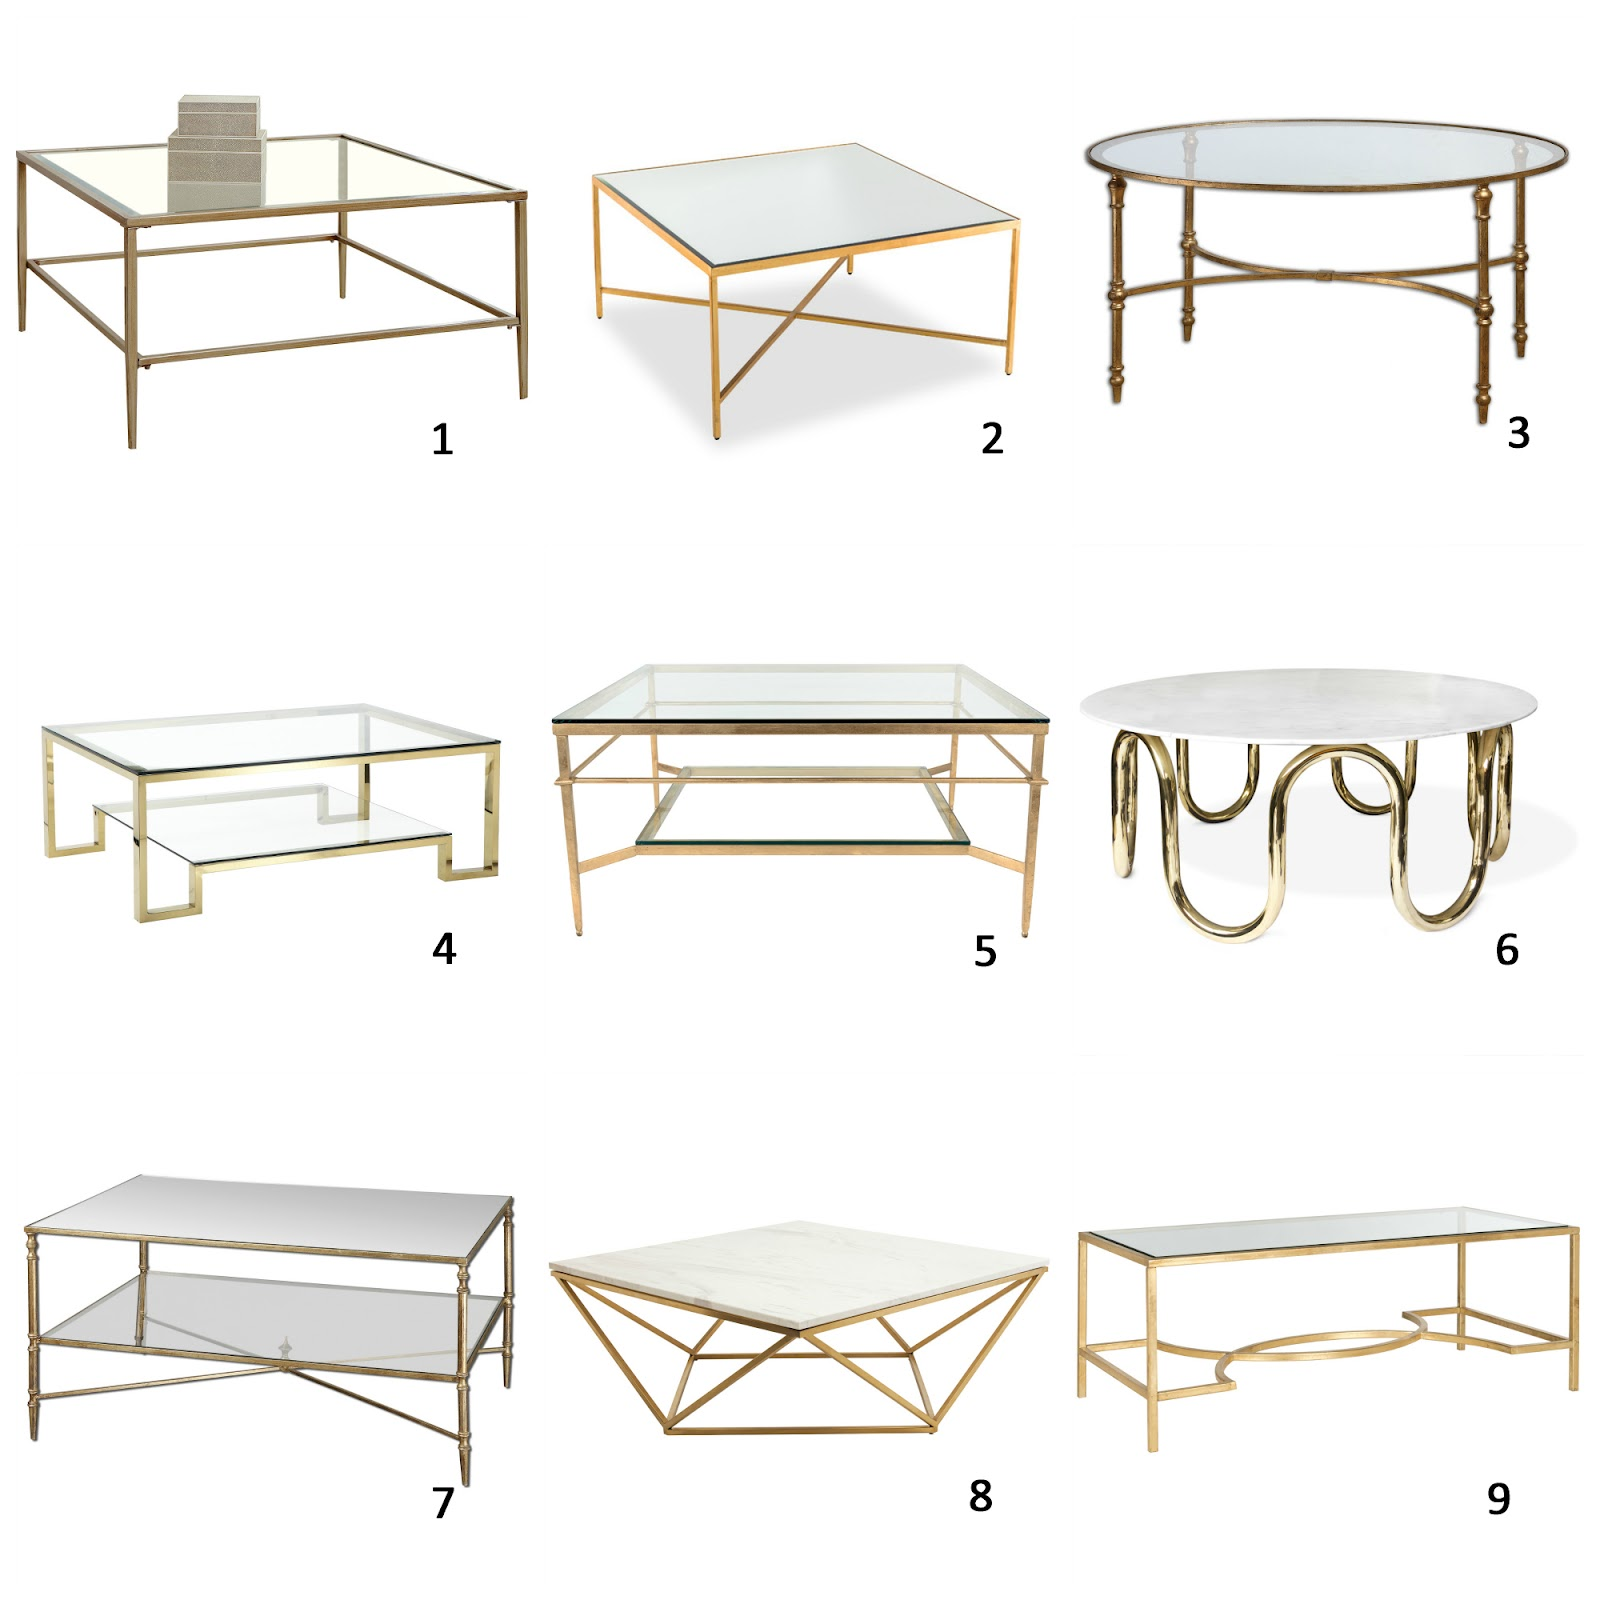 Save Or Splurge Brass And Glass Coffee Tables: AM Dolce Vita: A Roundup Of Brass And Glass Coffee Tables